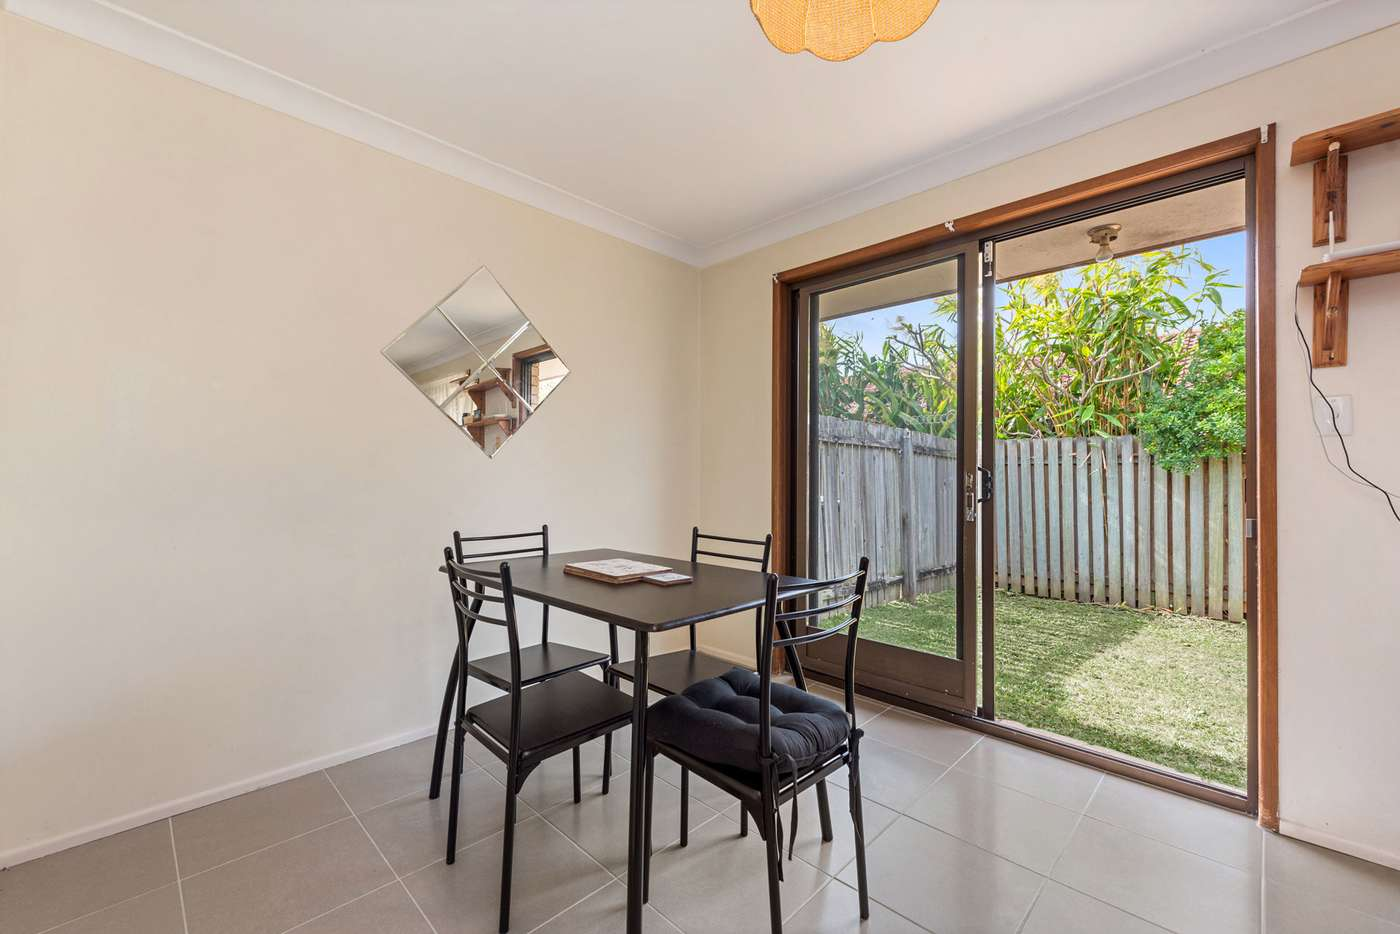 Fifth view of Homely house listing, 22 Honeywell Street, Tingalpa QLD 4173